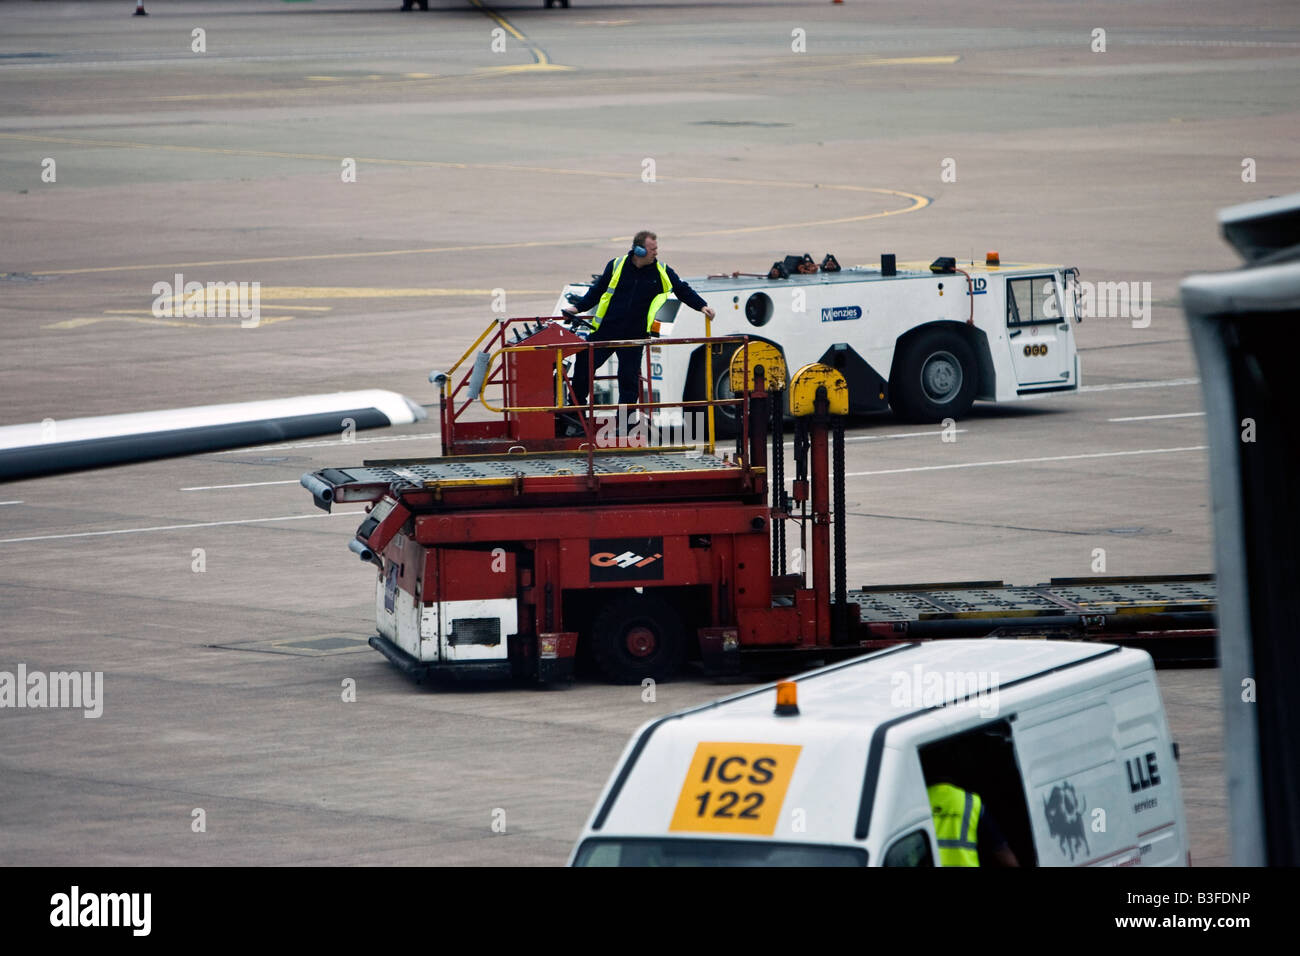 Luggage Handler Manchester Airport - Stock Image